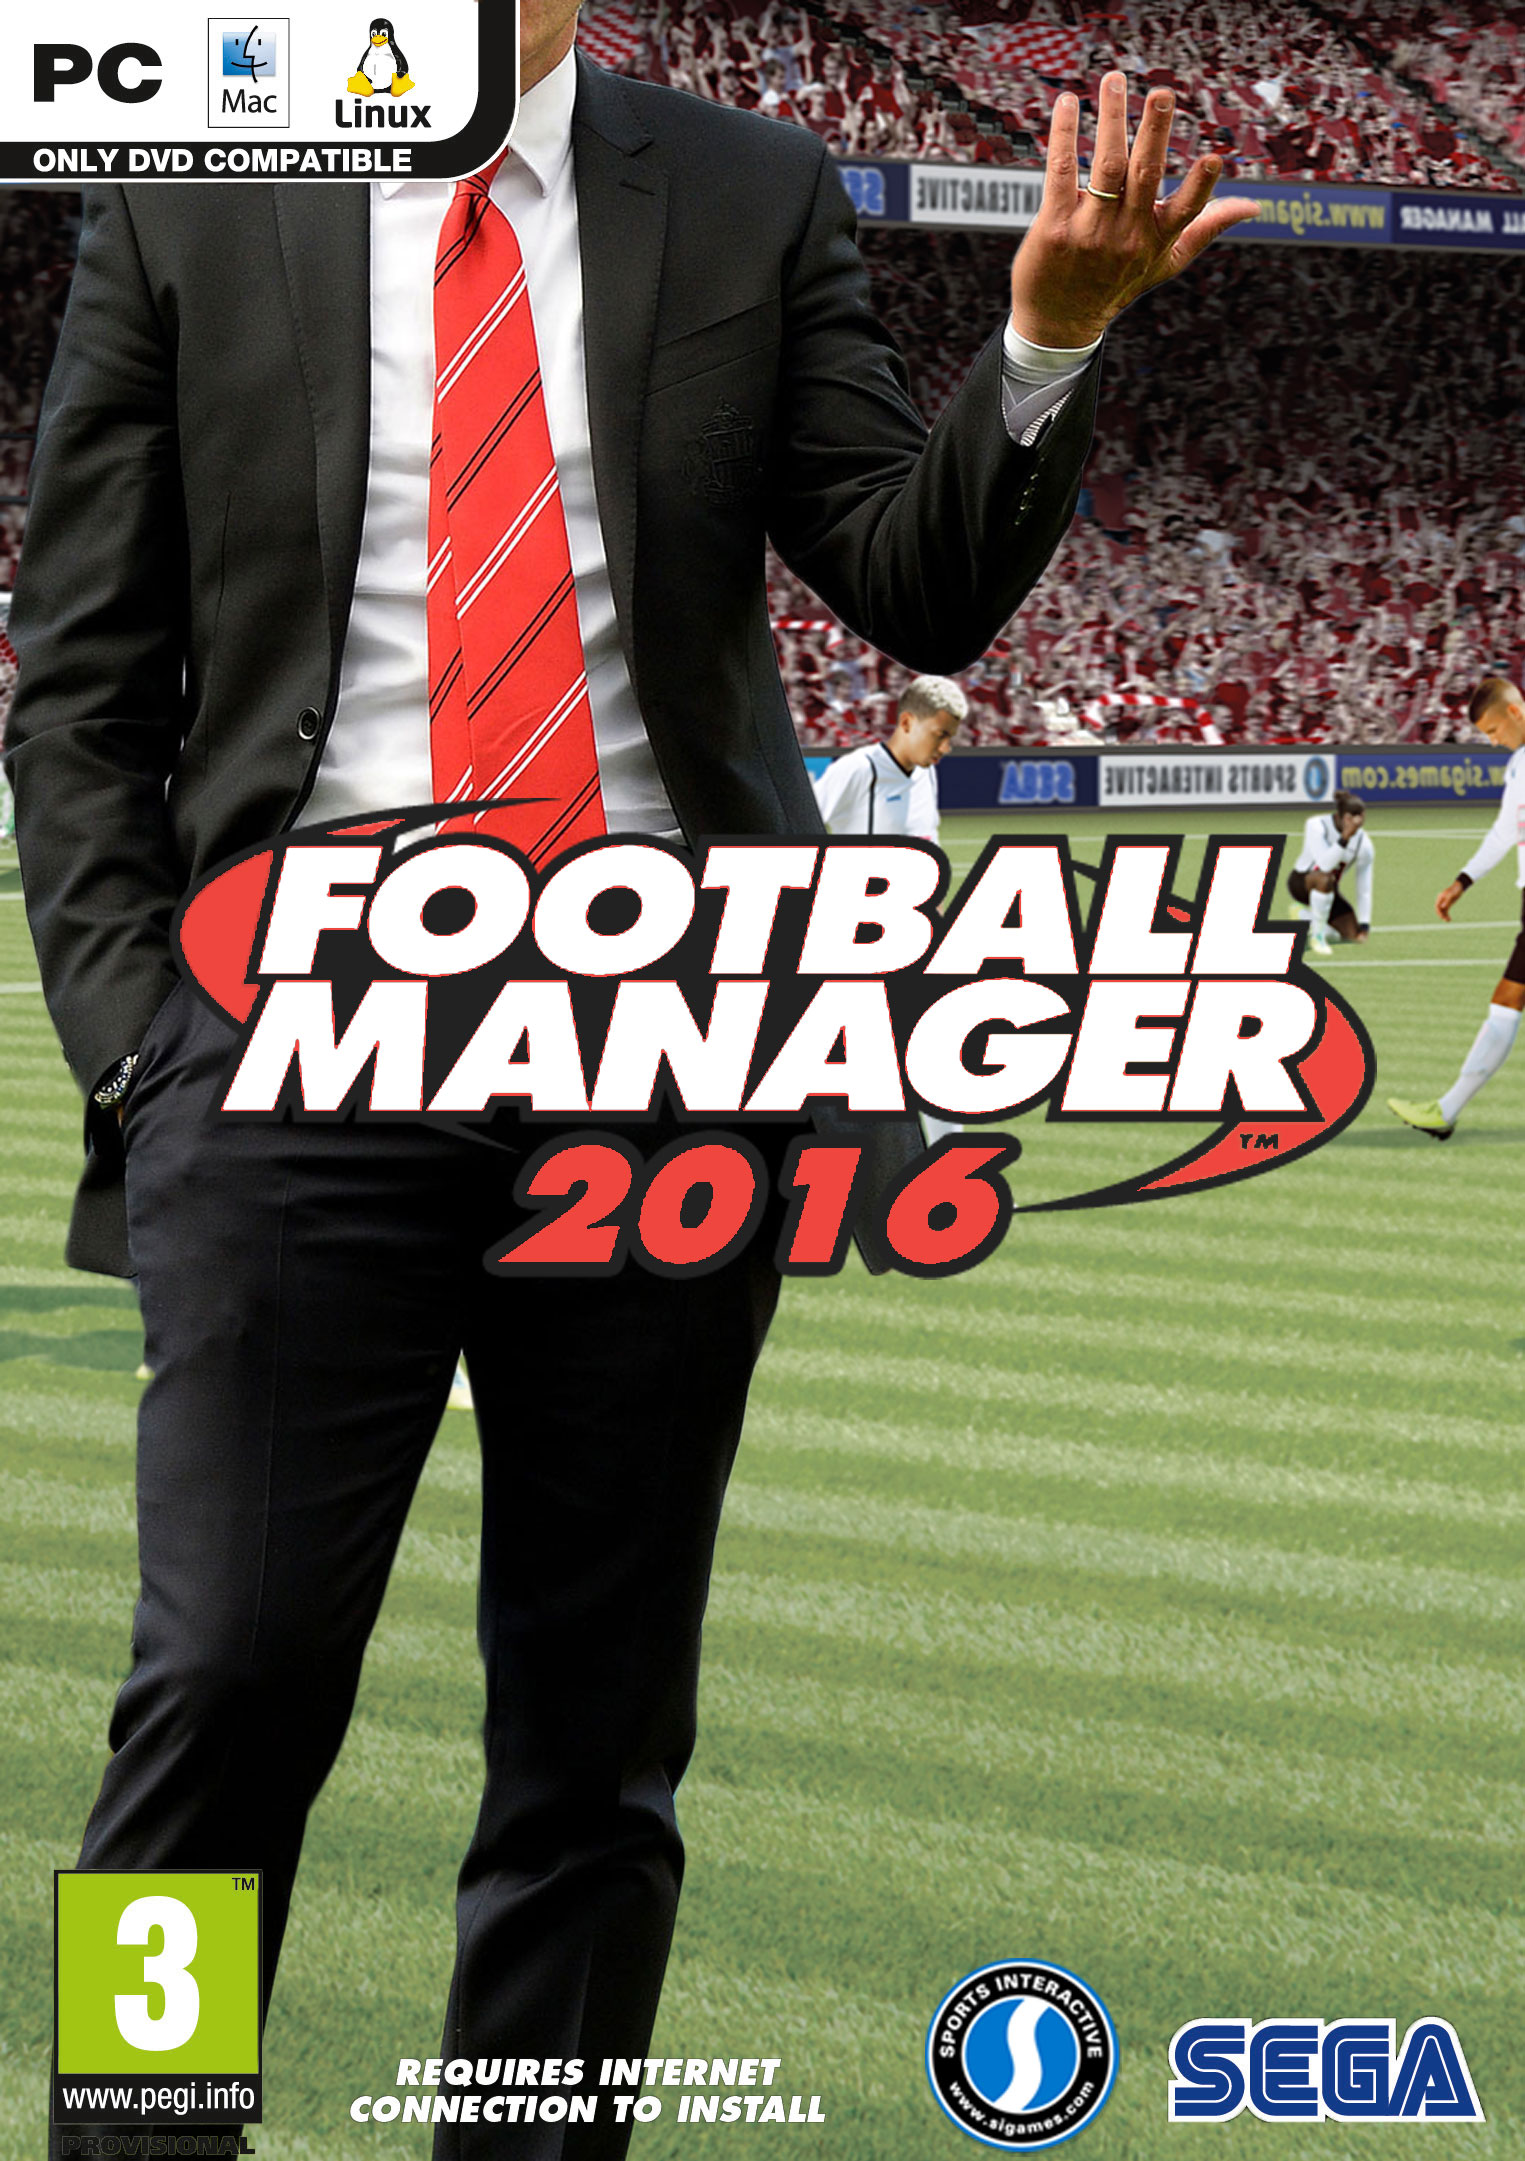 FOOTBALL MANAGER 2016 (Steam) + DISCOUNT + GIFT